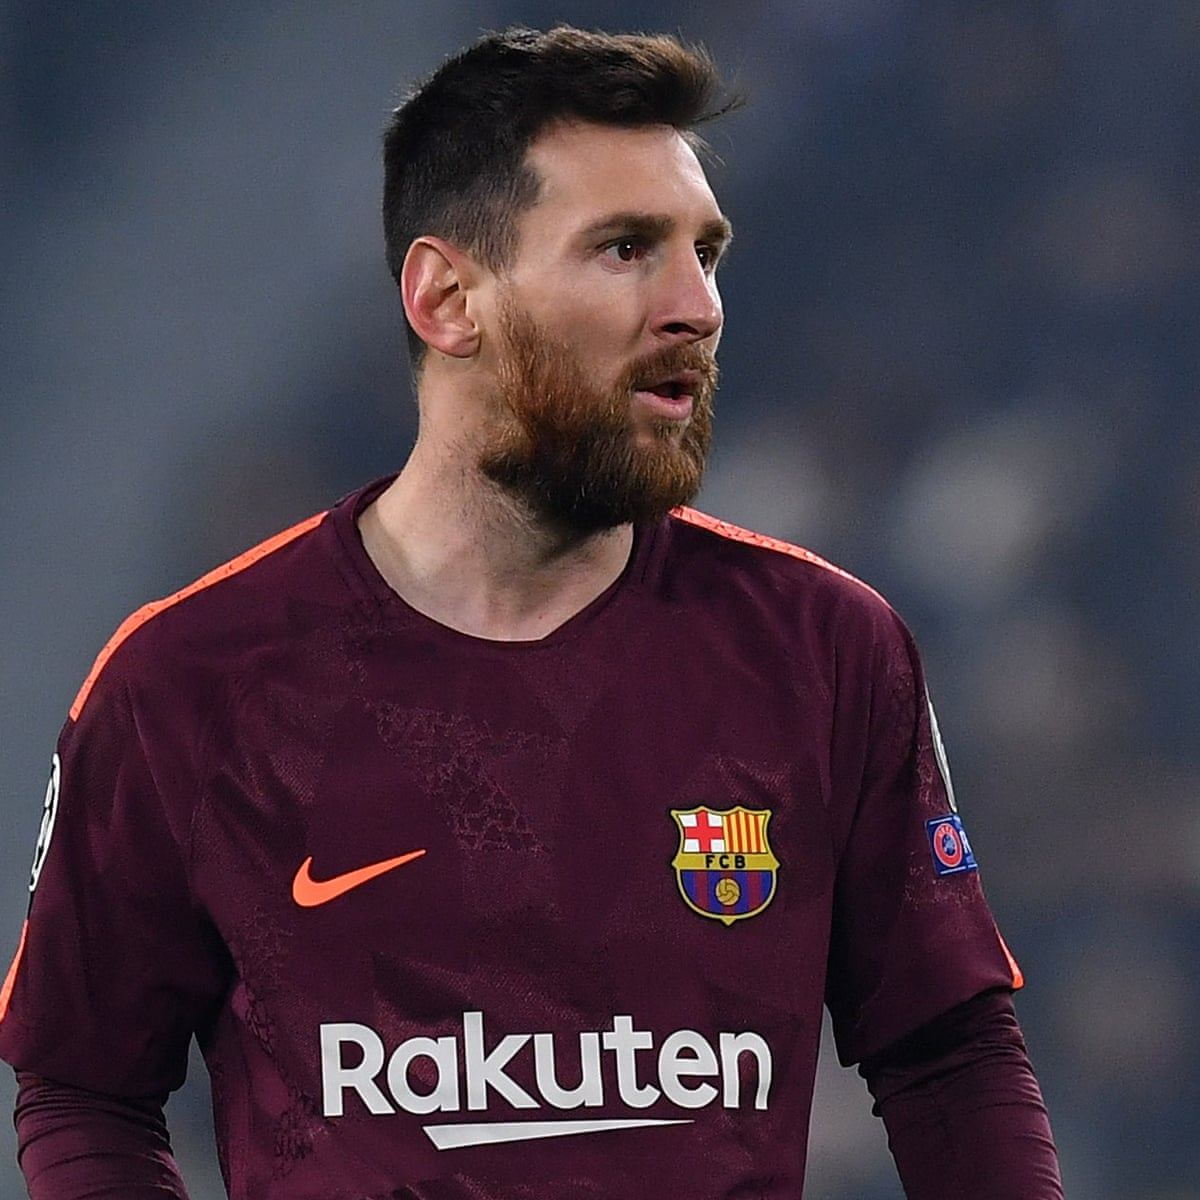 Lionel Messi Signs New Barcelona Deal To Run Until 2021 Lionel Messi The Guardian